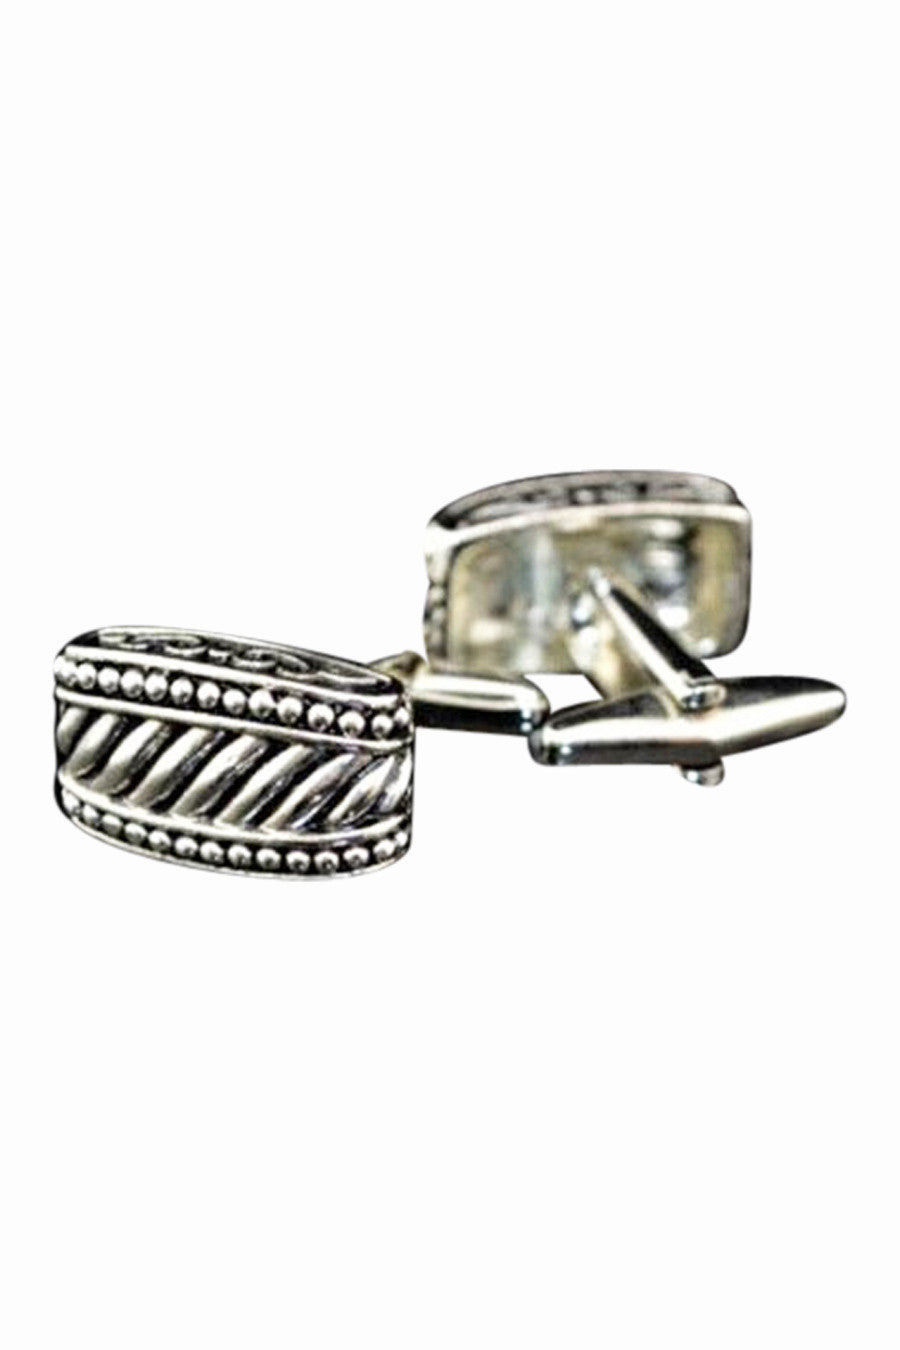 Retro Style Design Silver Cufflinks